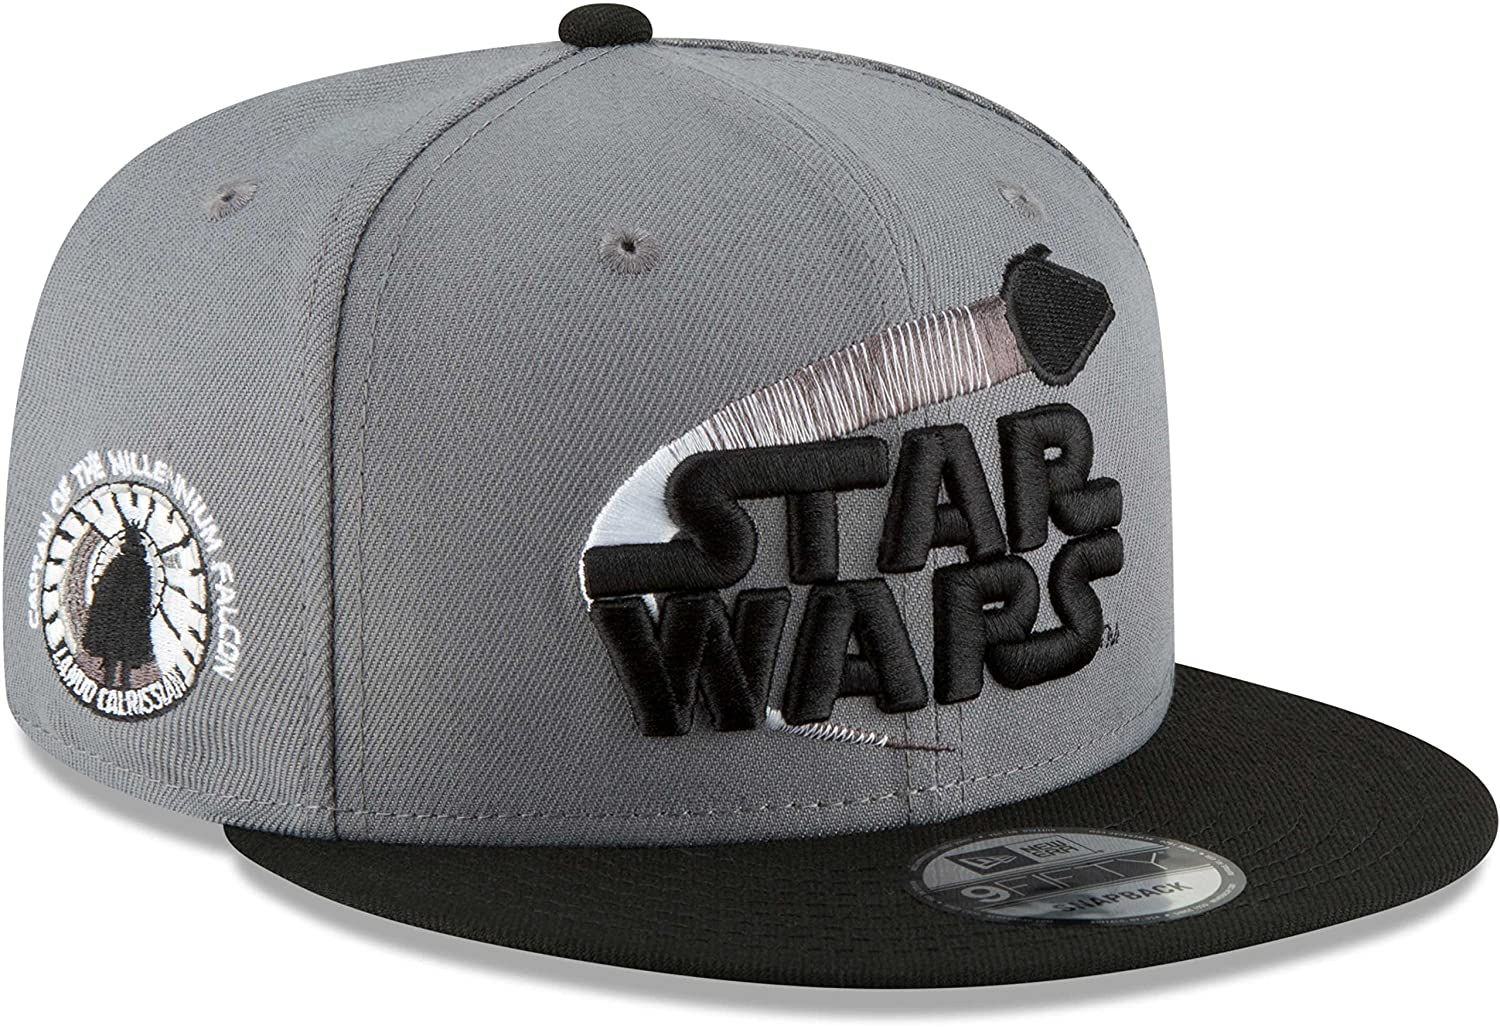 9697a2704c2 Amazon.com  Star Wars Lando Calrissian 9FIFTY Snapback Hat Storm Grey   Clothing